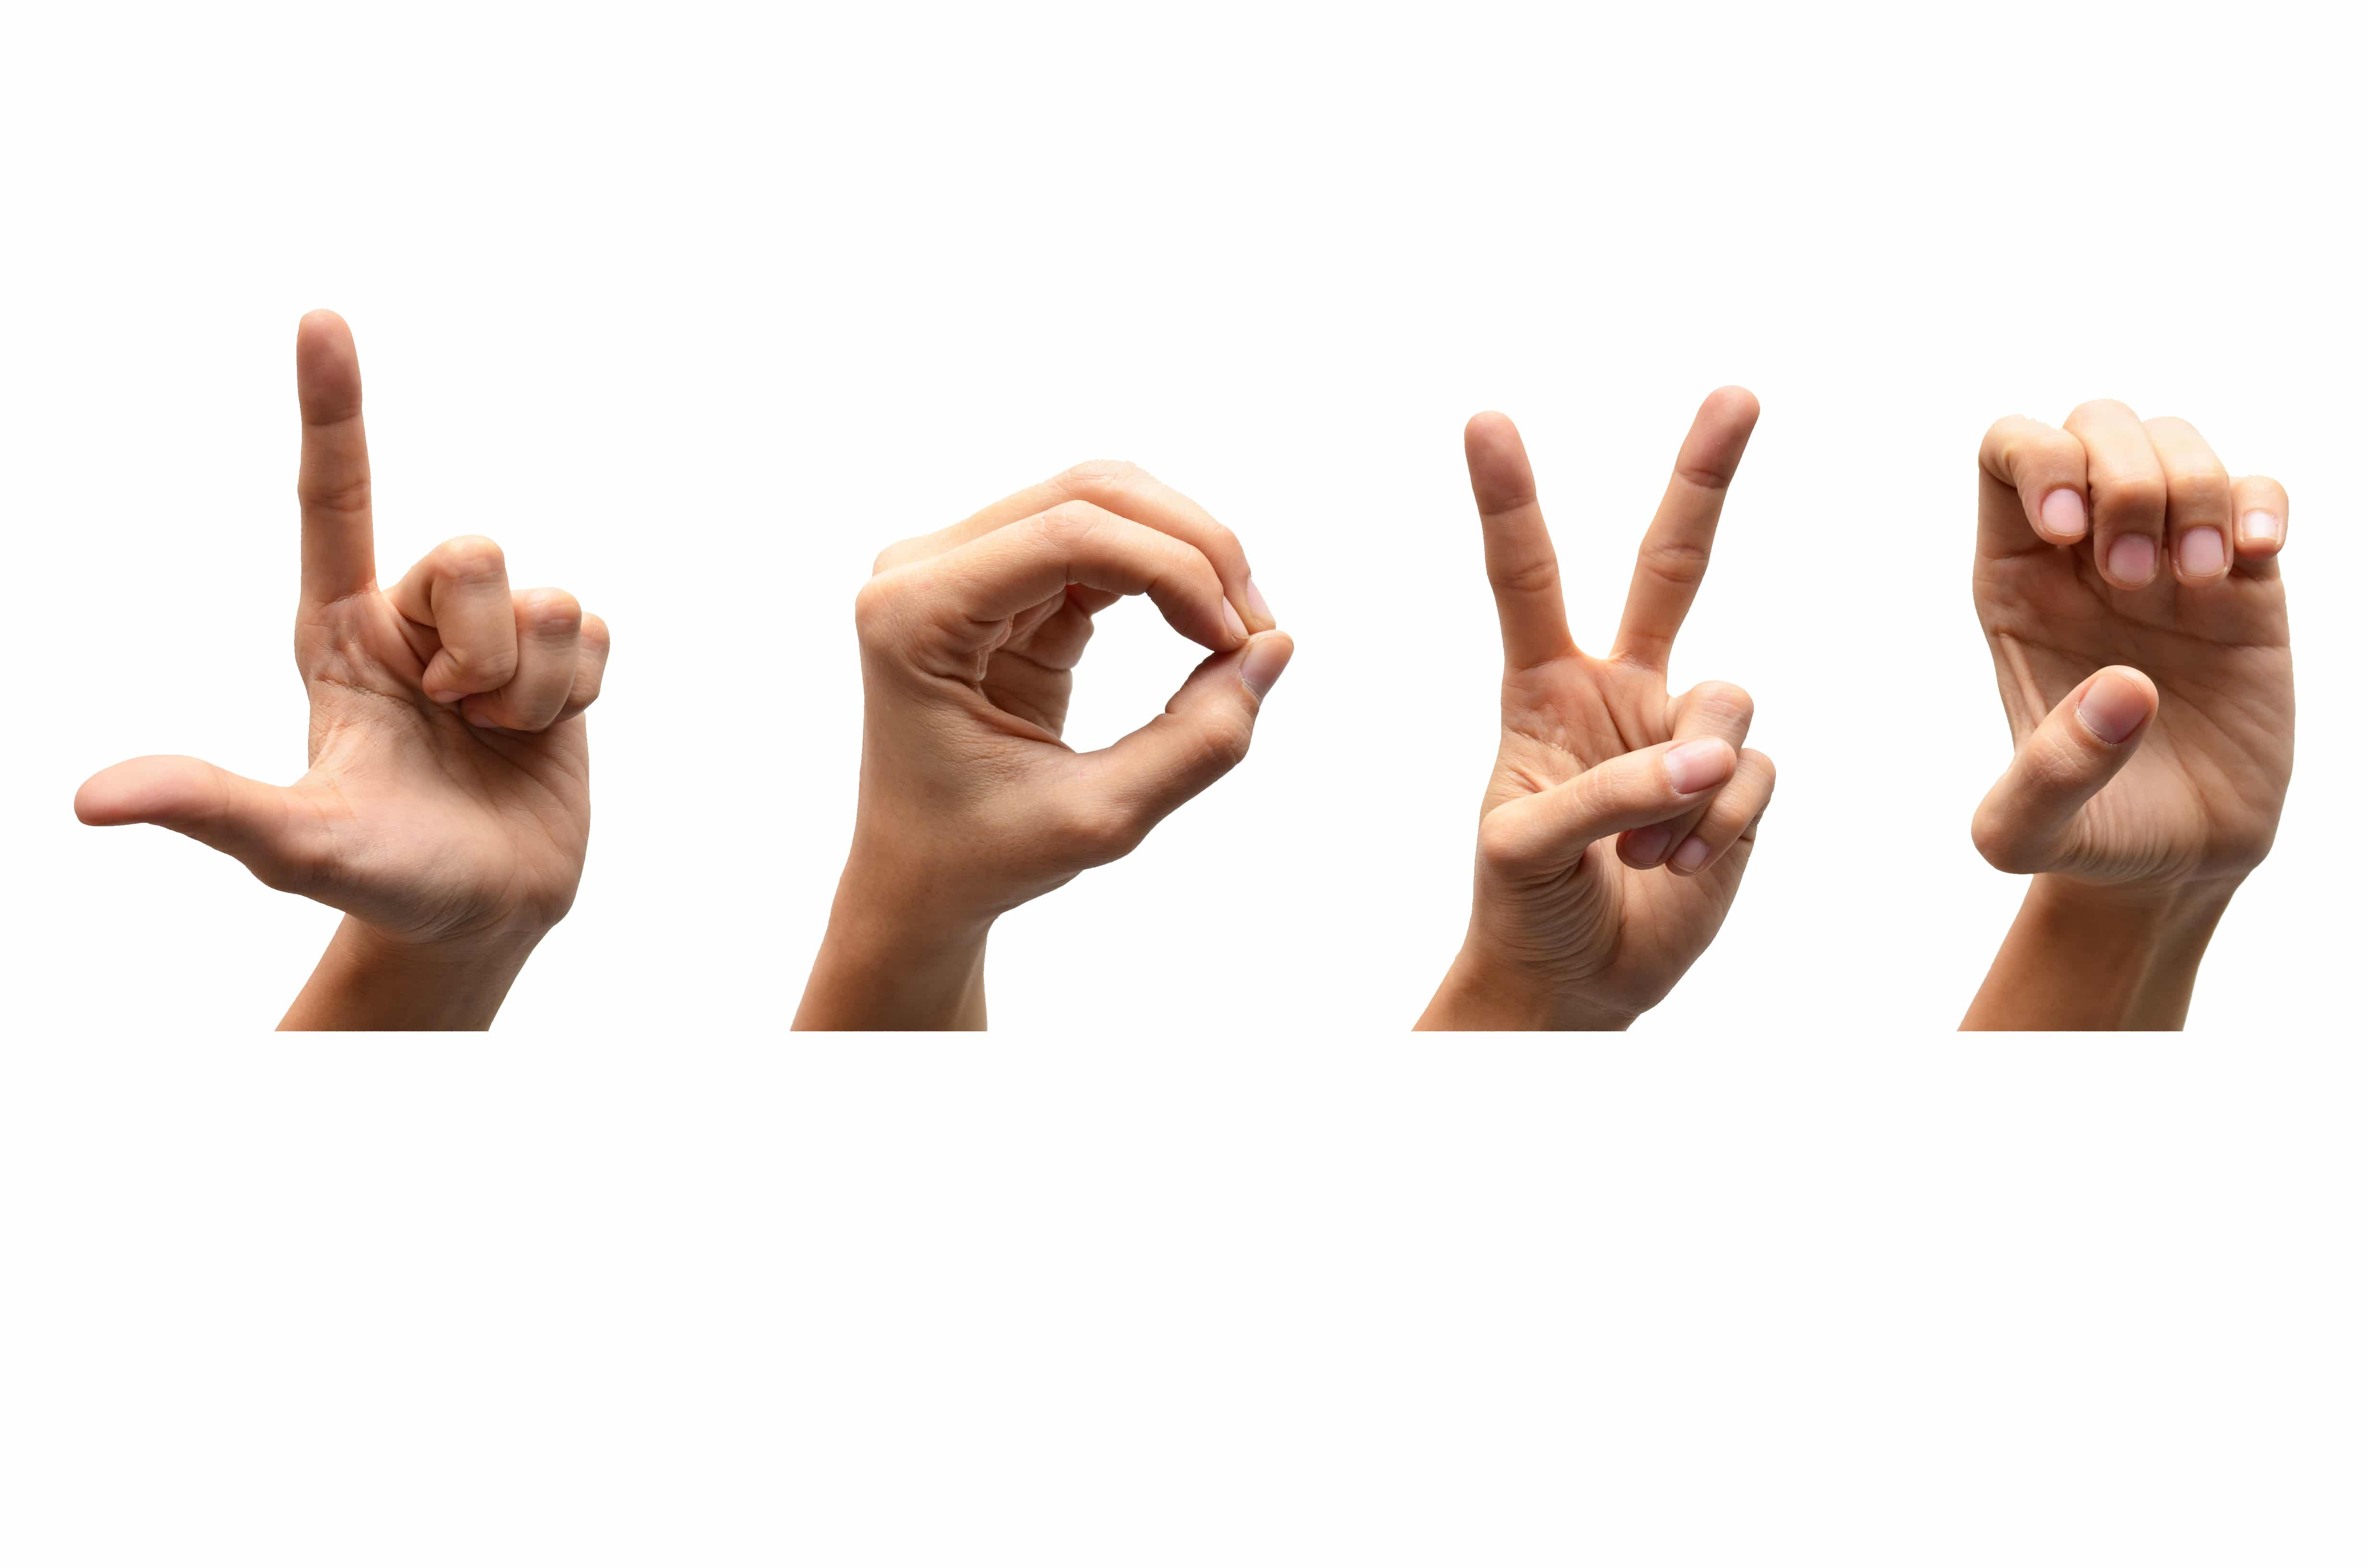 Finger Spelling - Sign Language Improves Vocabulary